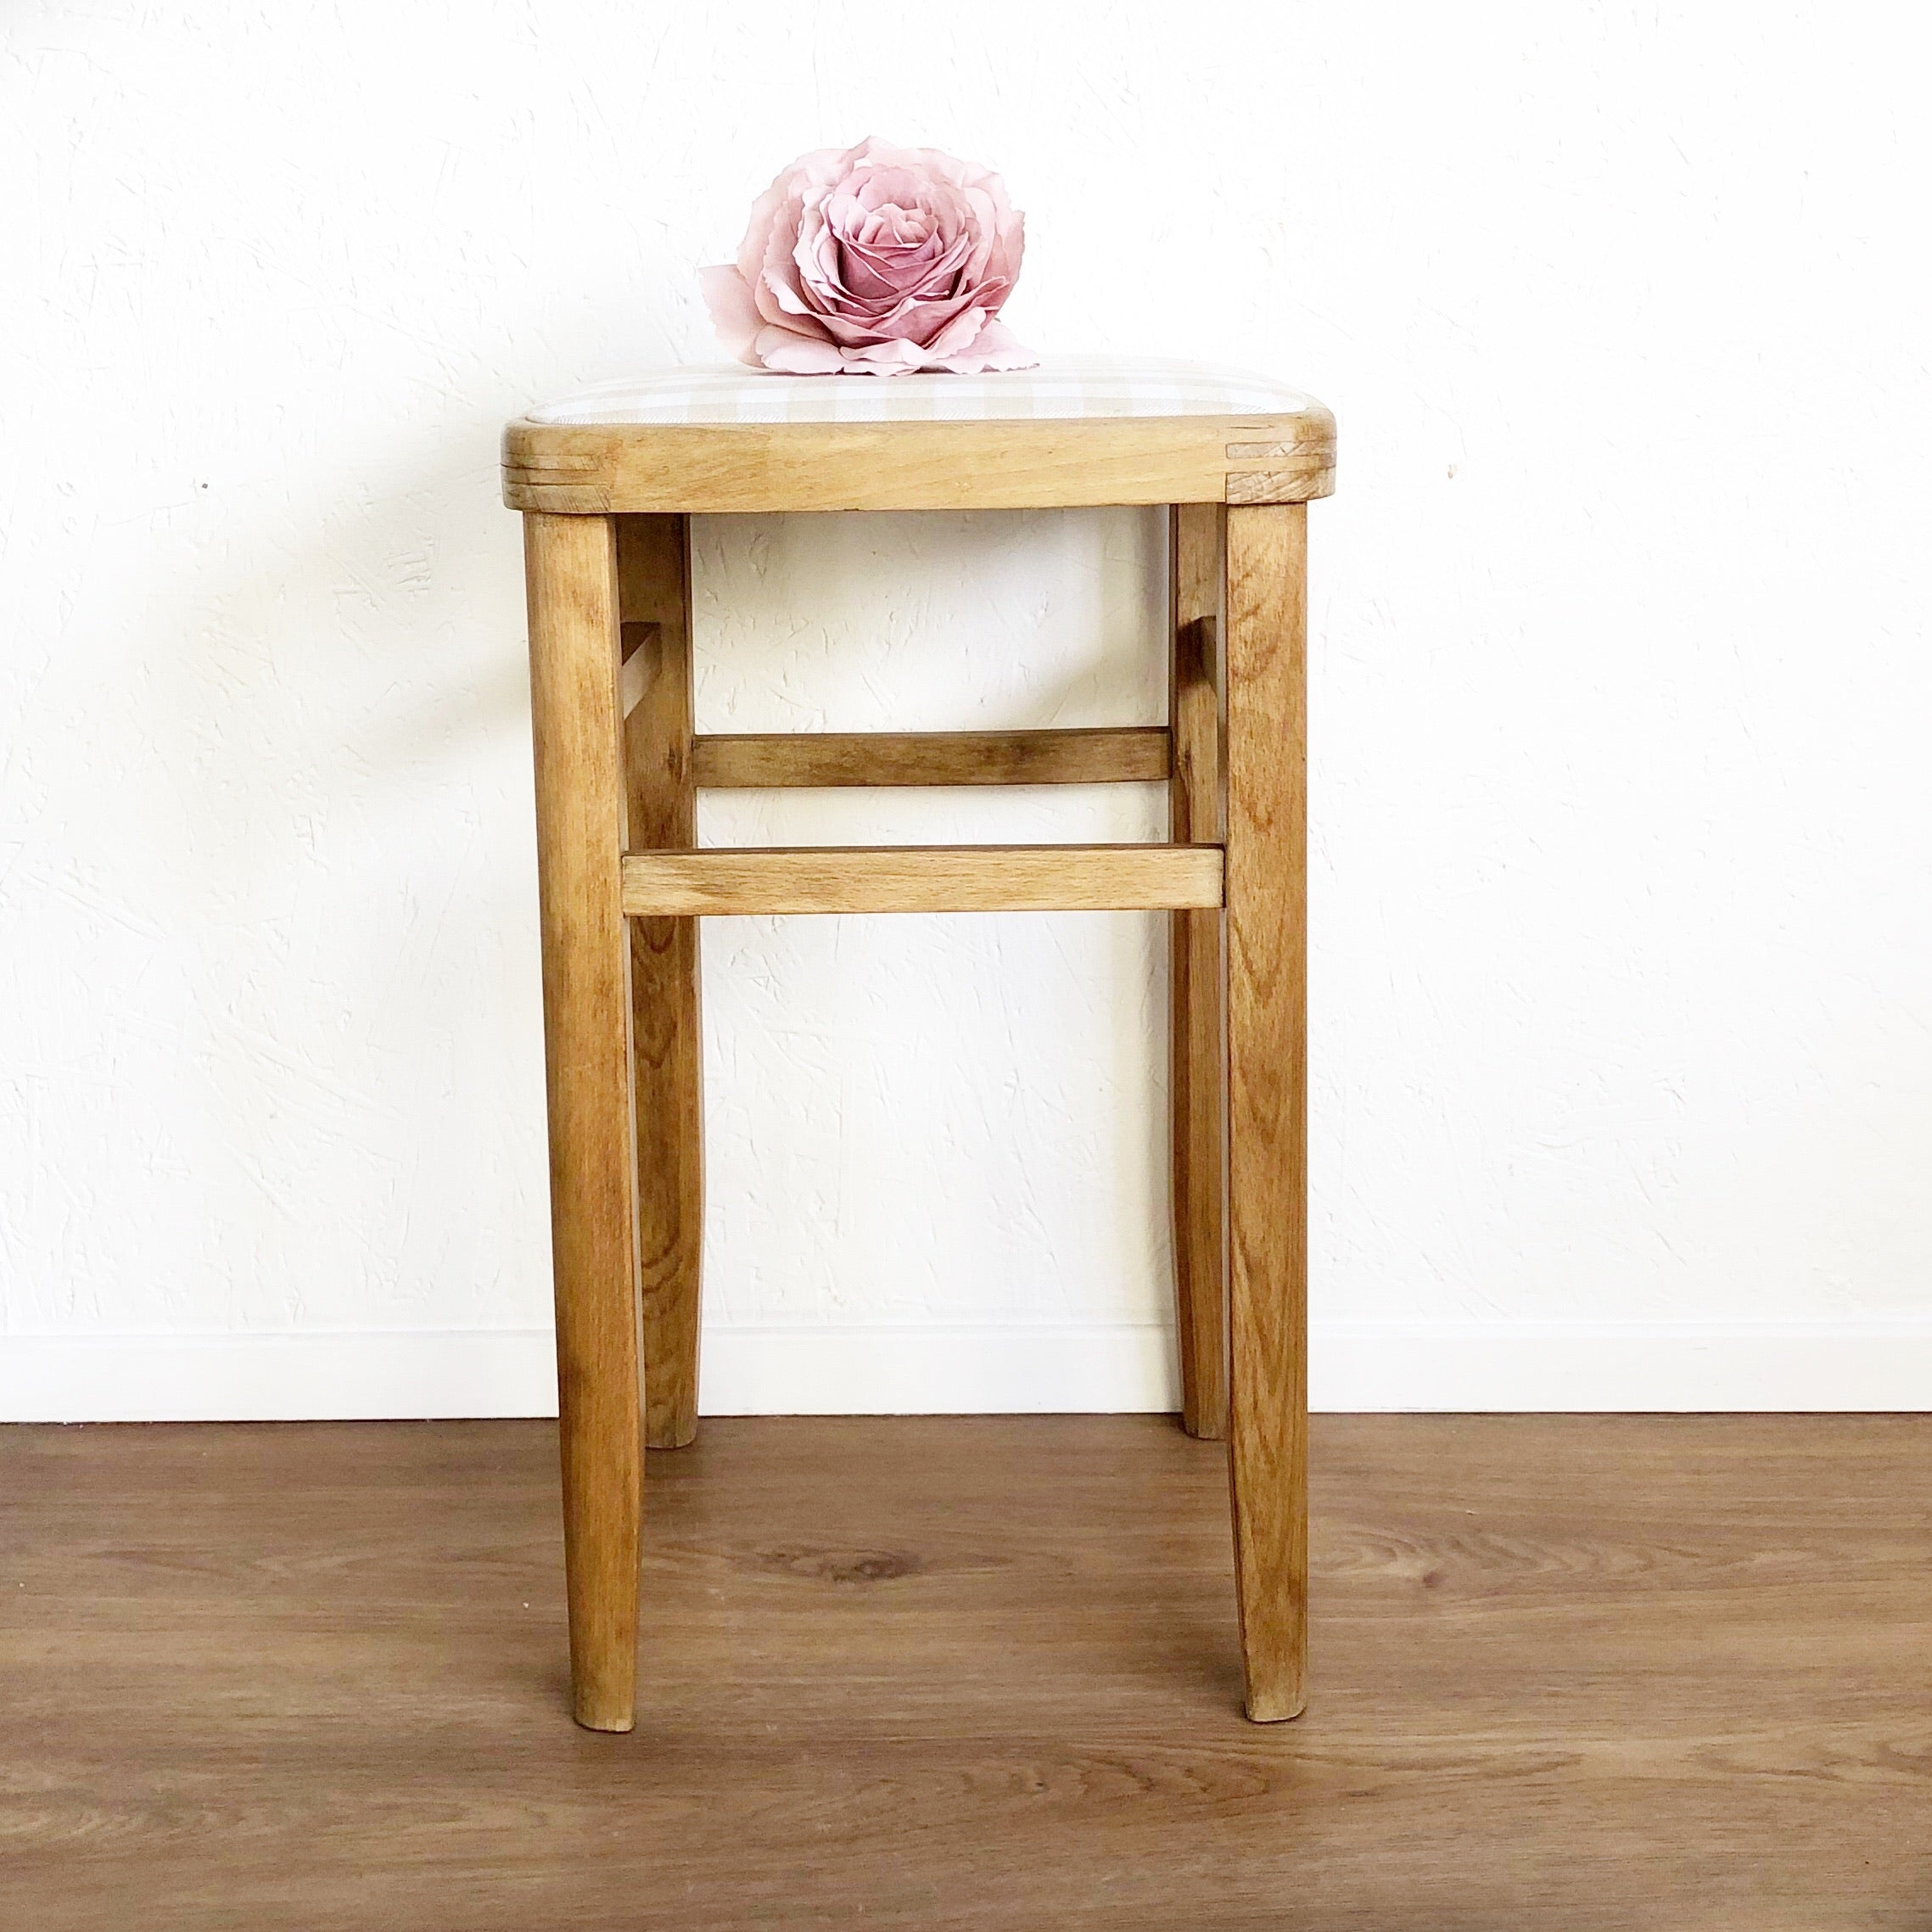 Vintage kitchen Wooden stool - Unique Home Pieces